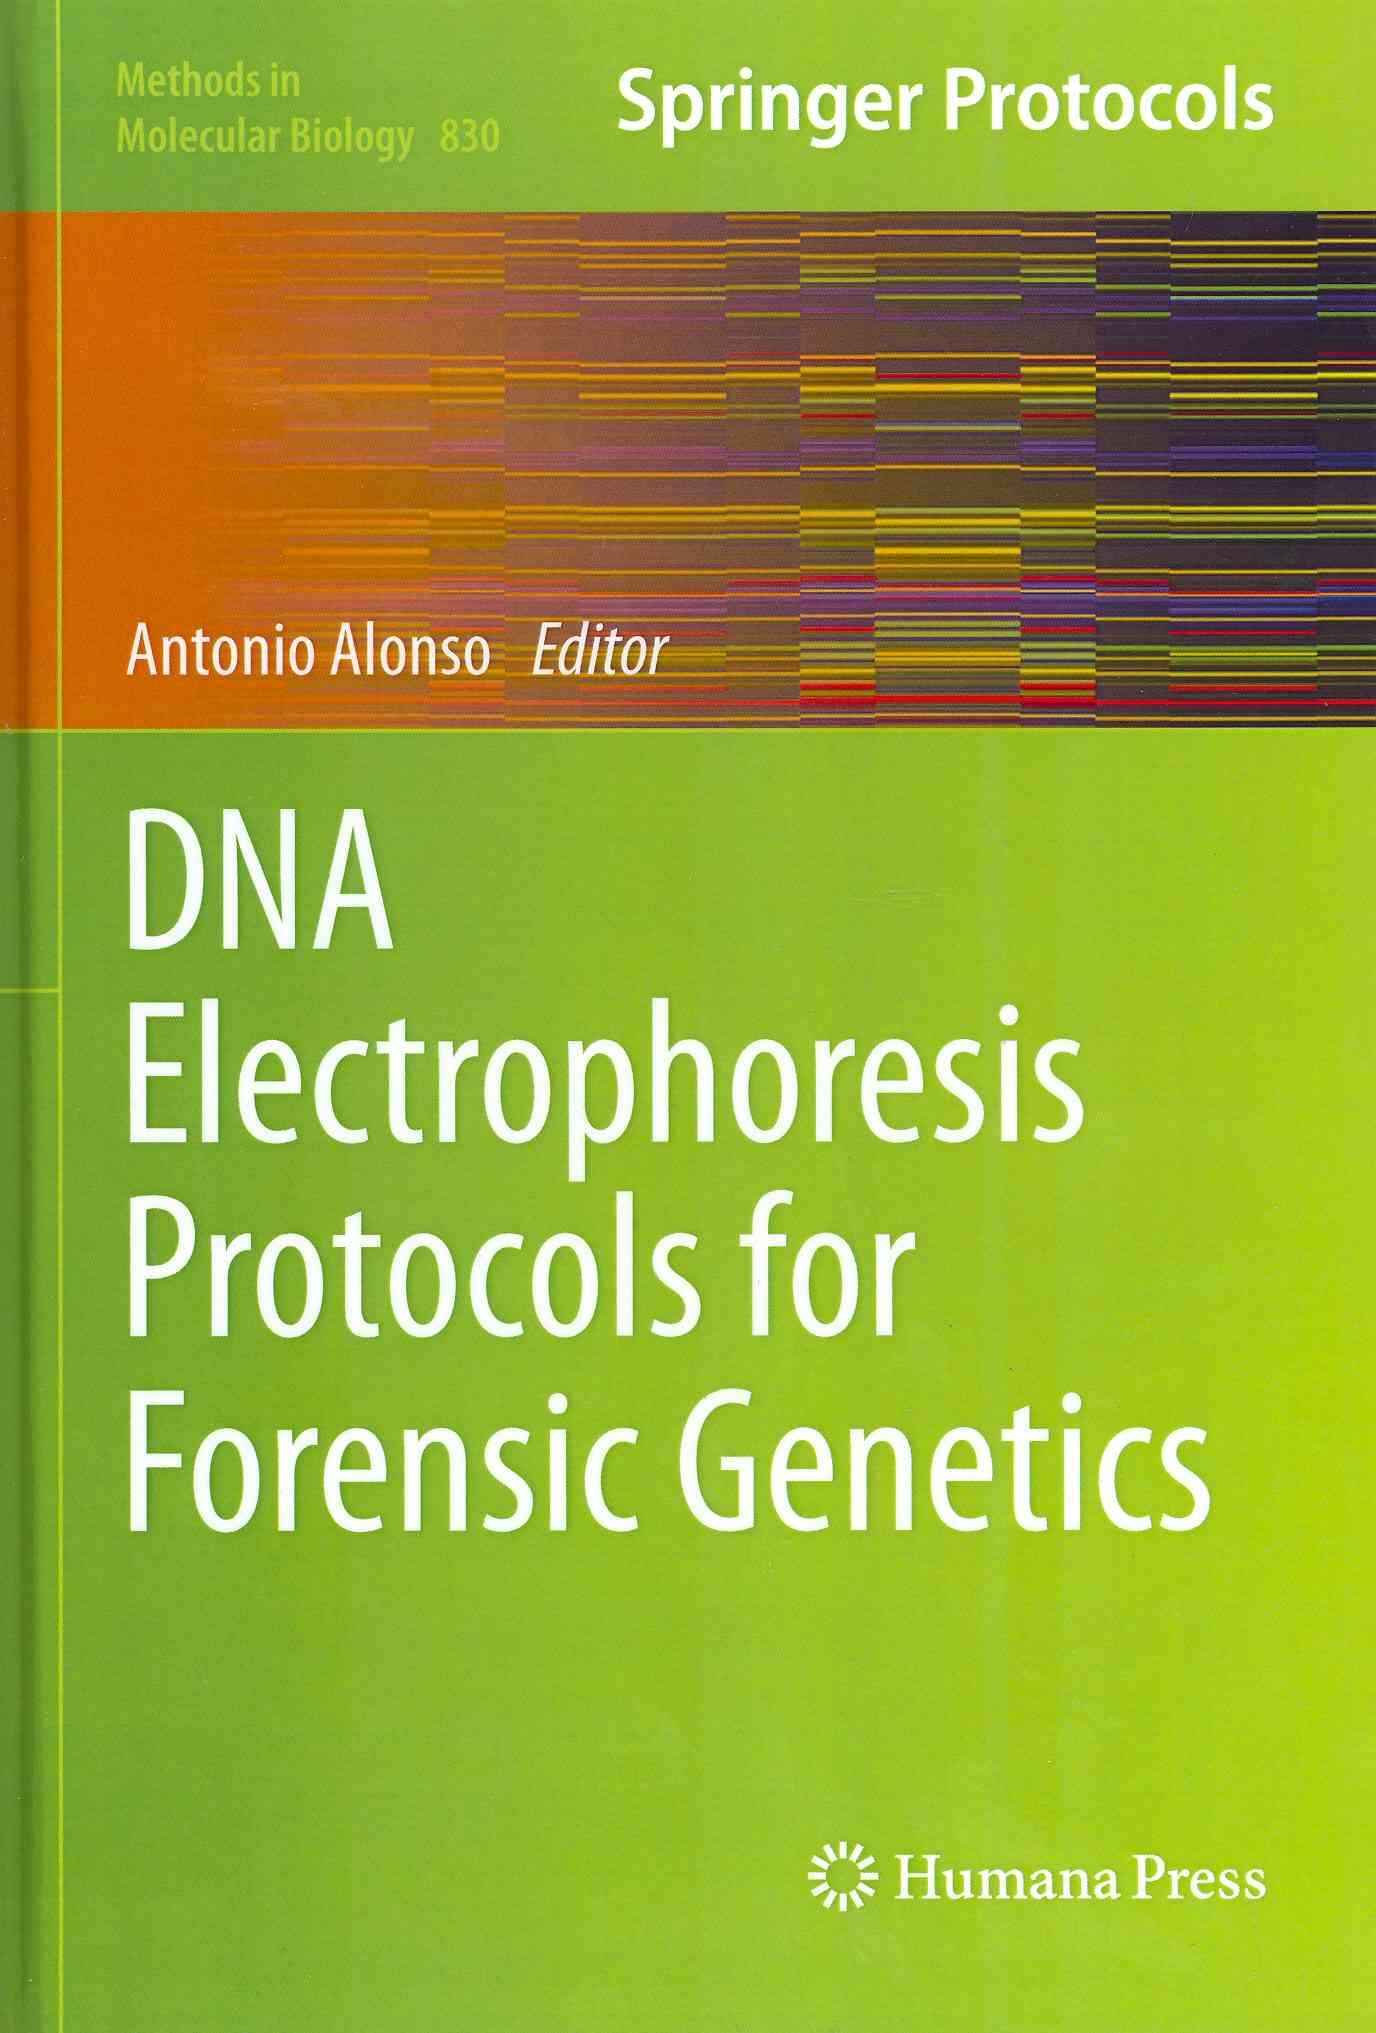 DNA Electrophoresis Protocols for Forensic Genetics By Alonso, Antonio (EDT)